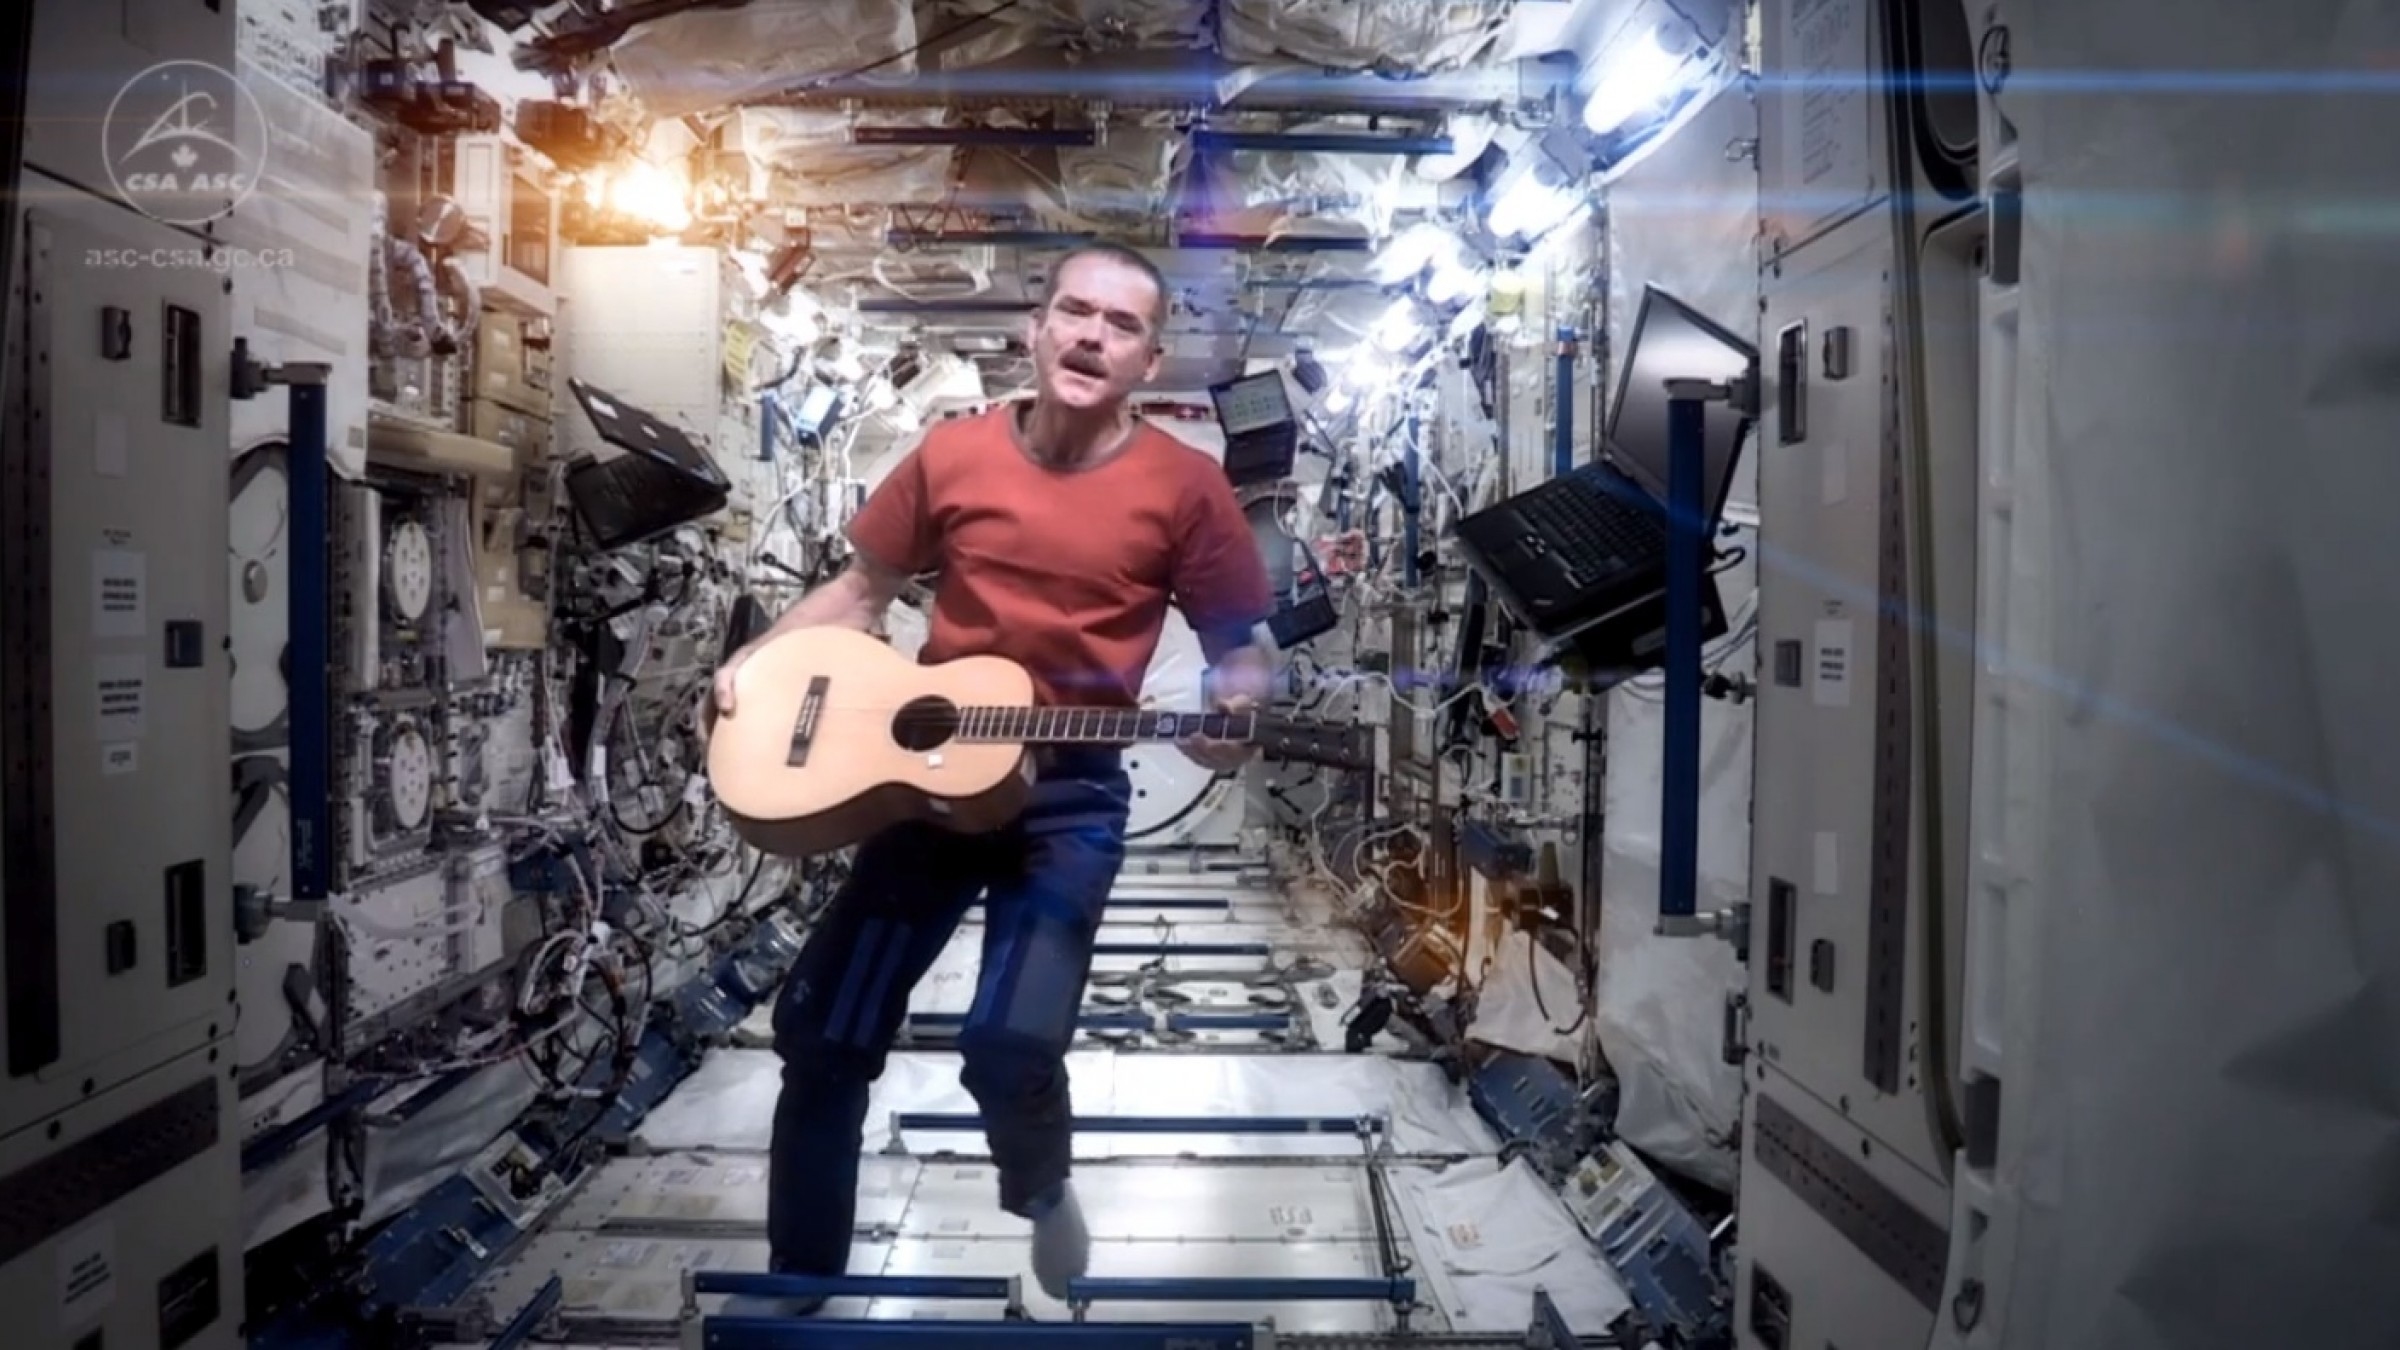 https://nofilmschool.com/sites/default/files/styles/facebook/public/uploads/2013/05/Chris-Hadfield-Space-Oddity-Space-Station-Music-Video.jpg?itok=l4YdTS-O